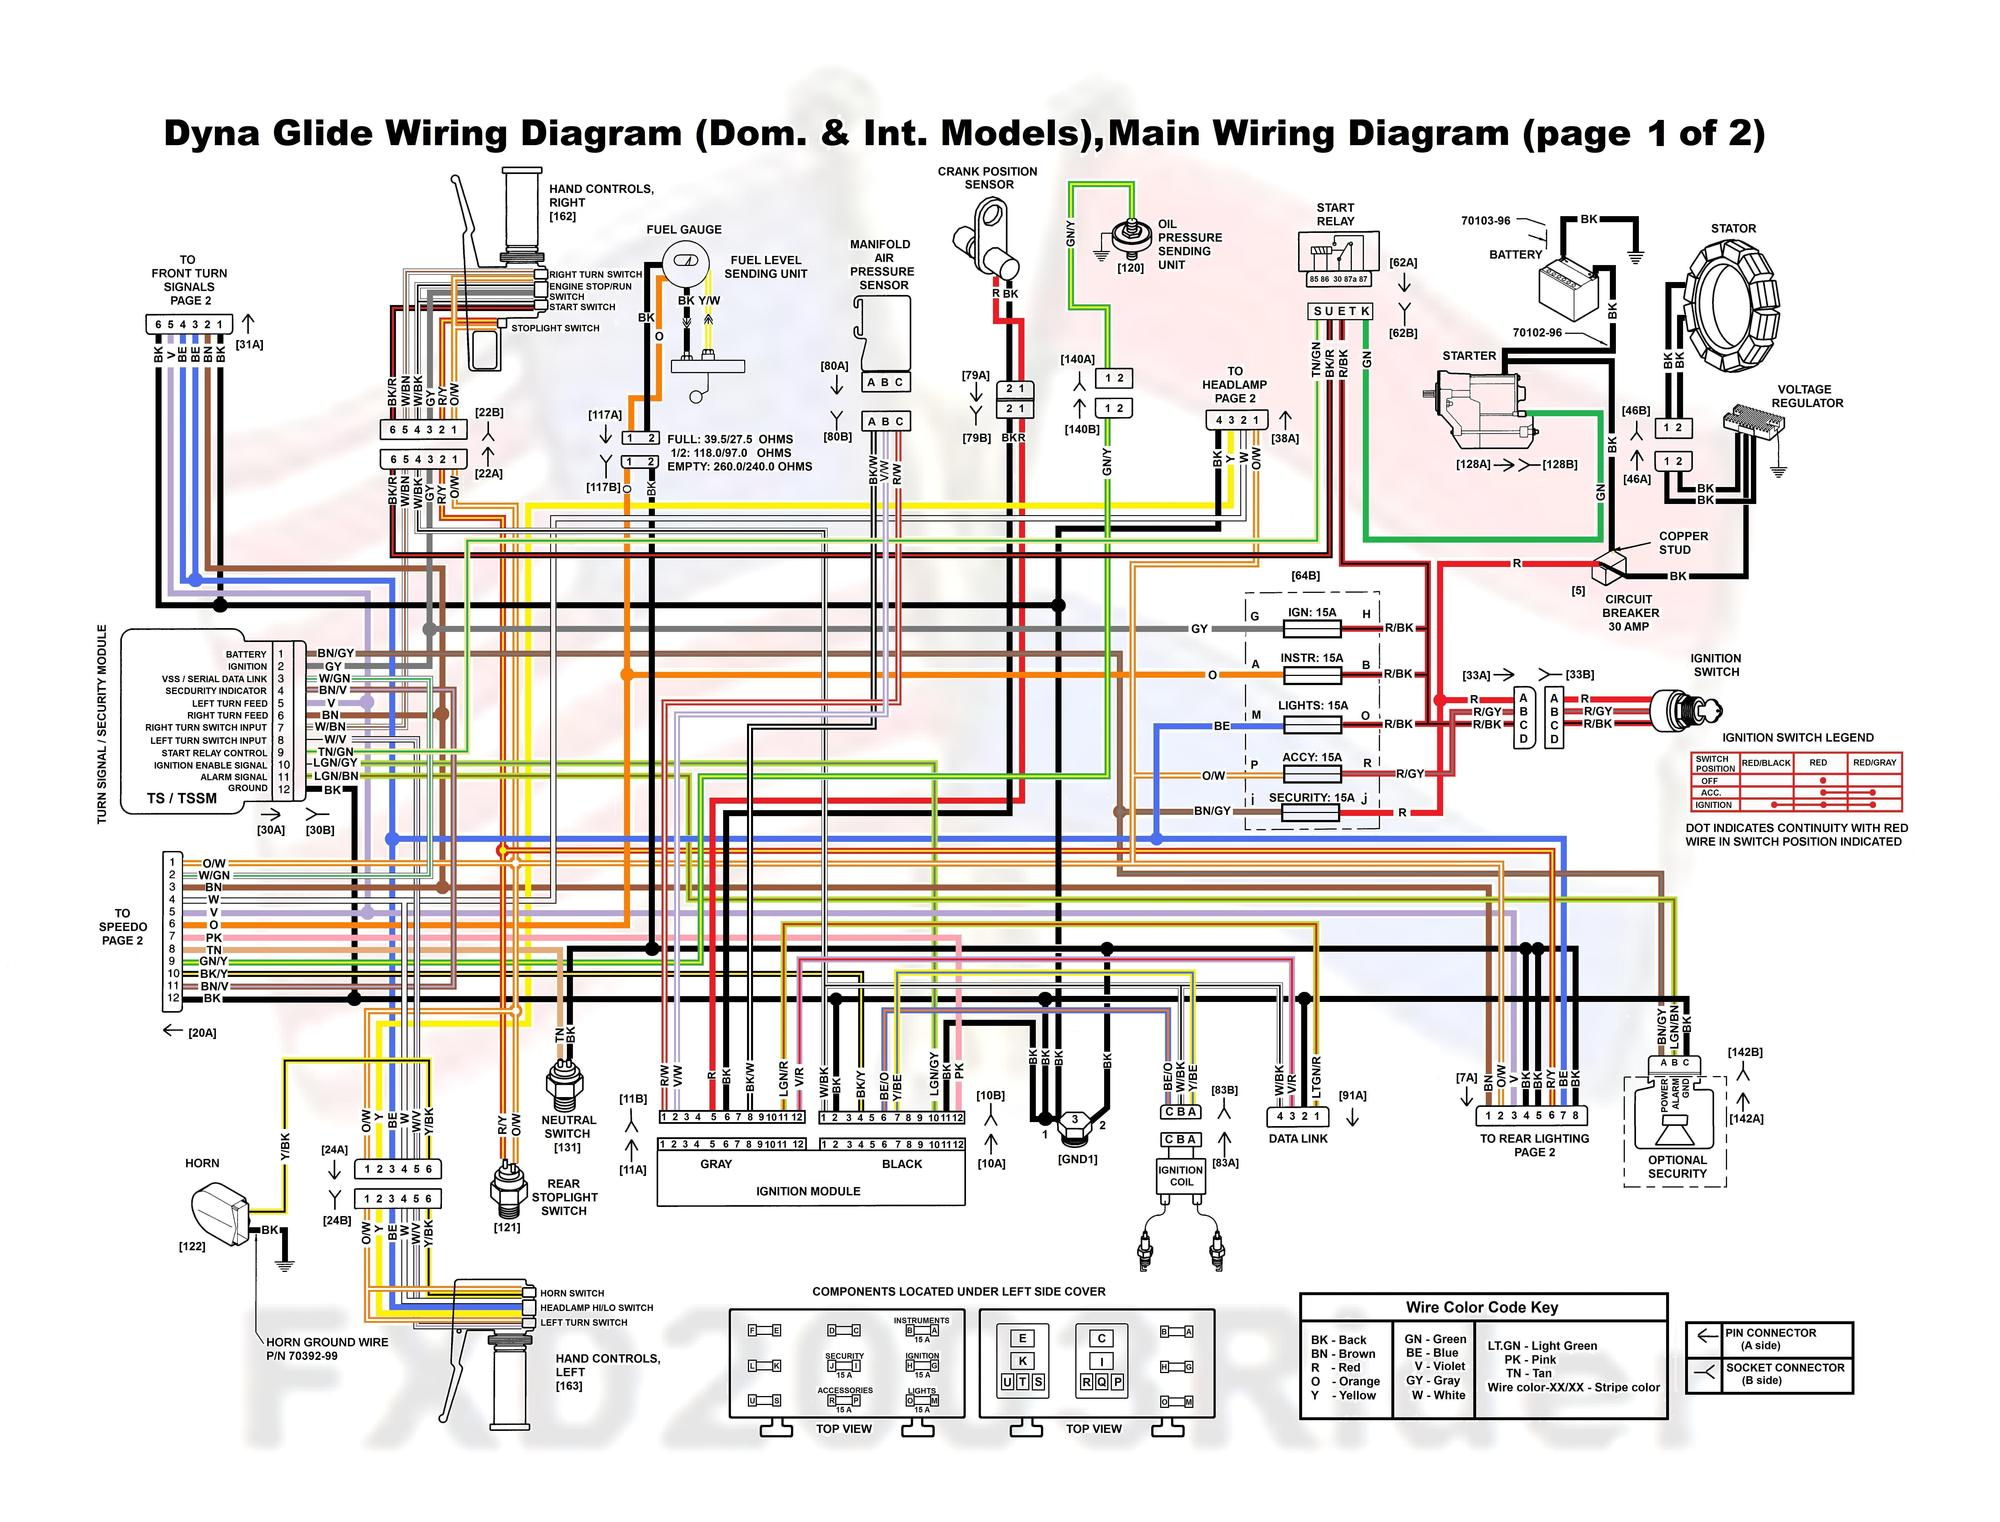 hight resolution of 2000 harley fxdwg wiring diagram simple wiring schema rh 35 aspire atlantis de dyna 2000 ignition wiring diagram dyna ignition coils wiring diagram